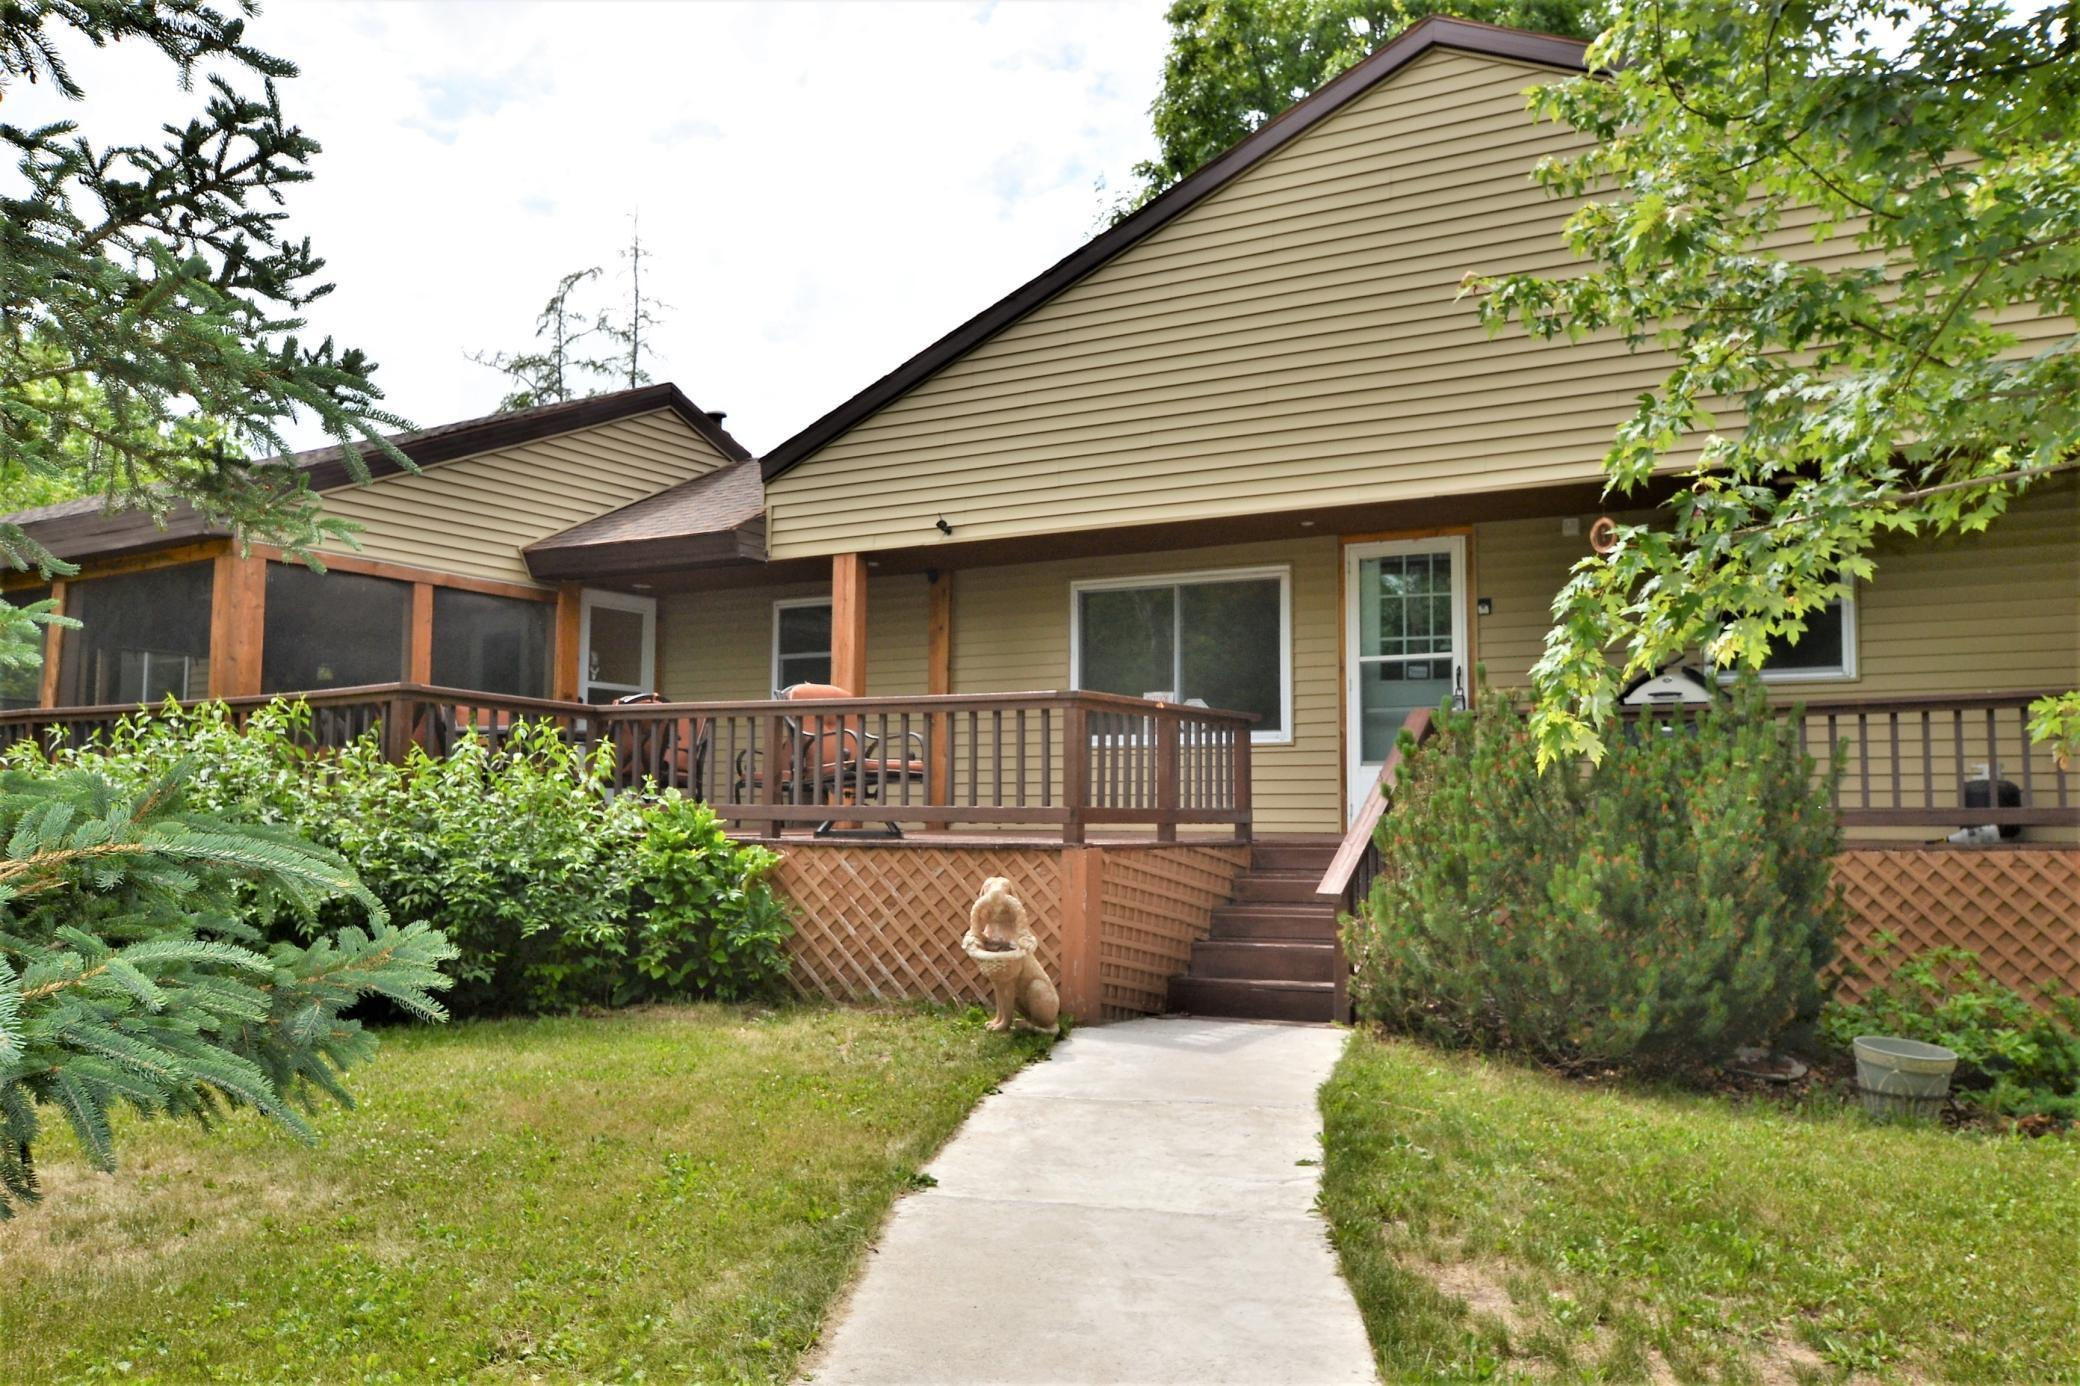 38563 671st Lane Property Photo - Swatara, MN real estate listing